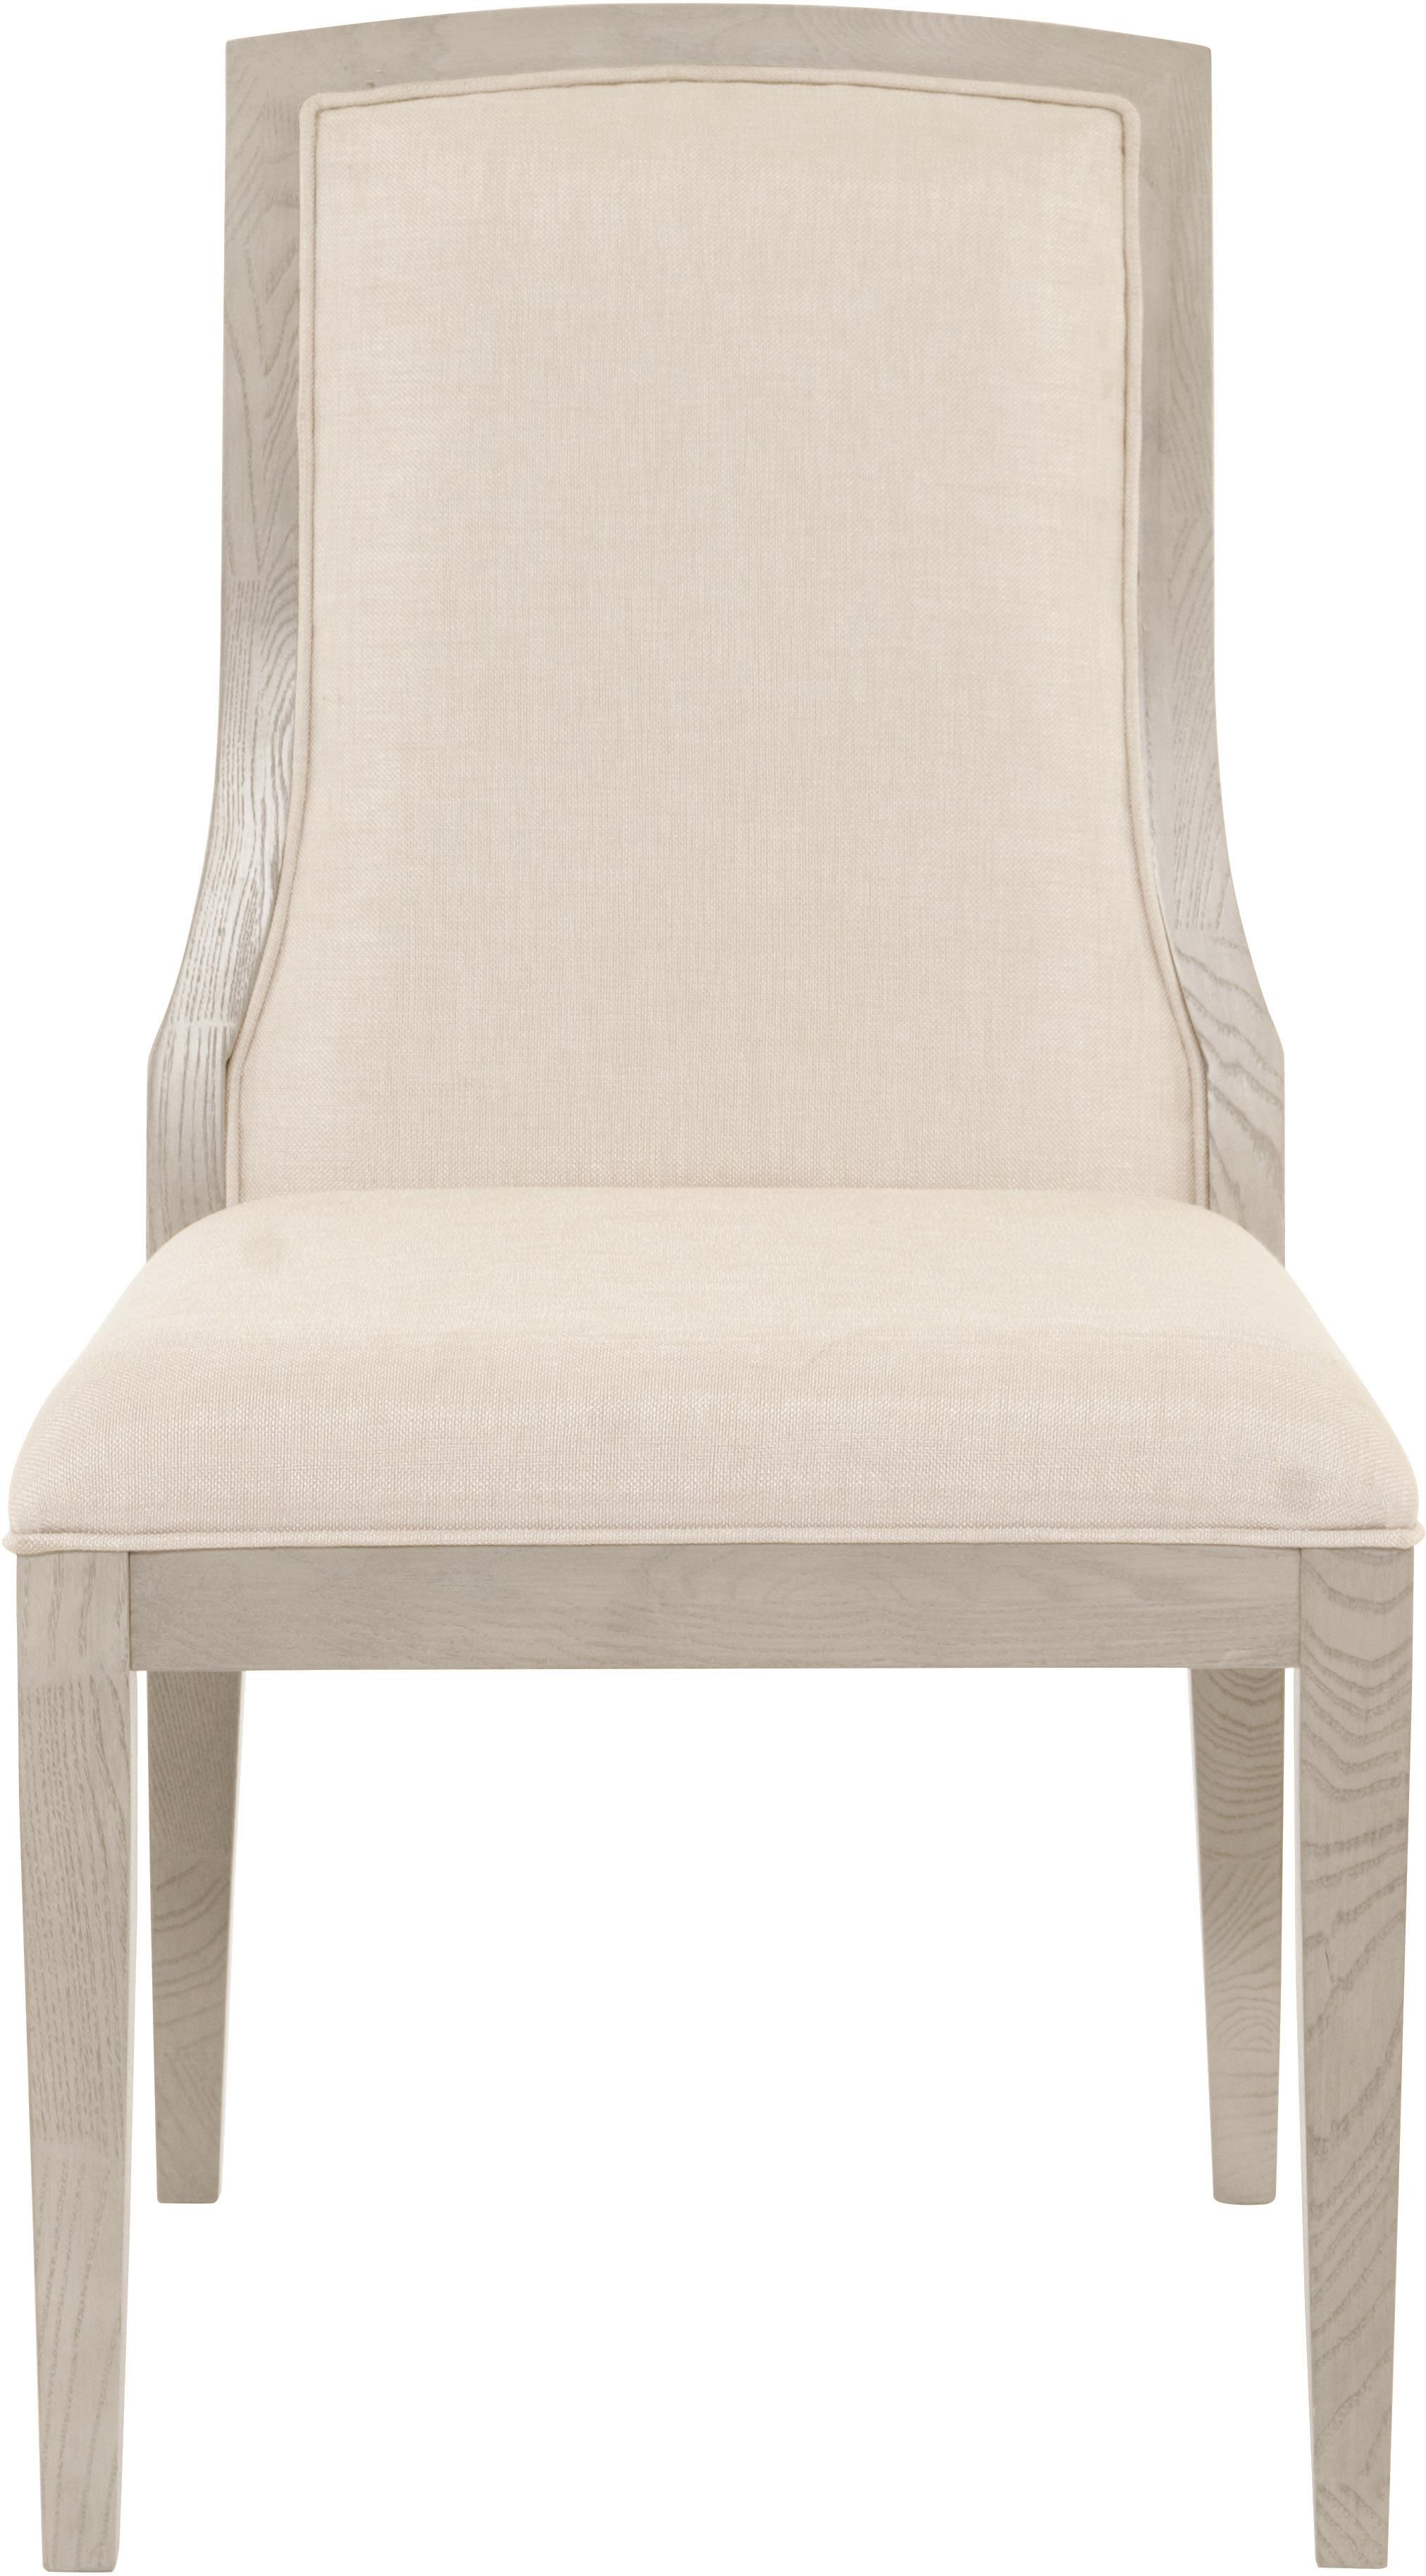 Bernhardt Criteria 363 541g Upholstered Side Chair With